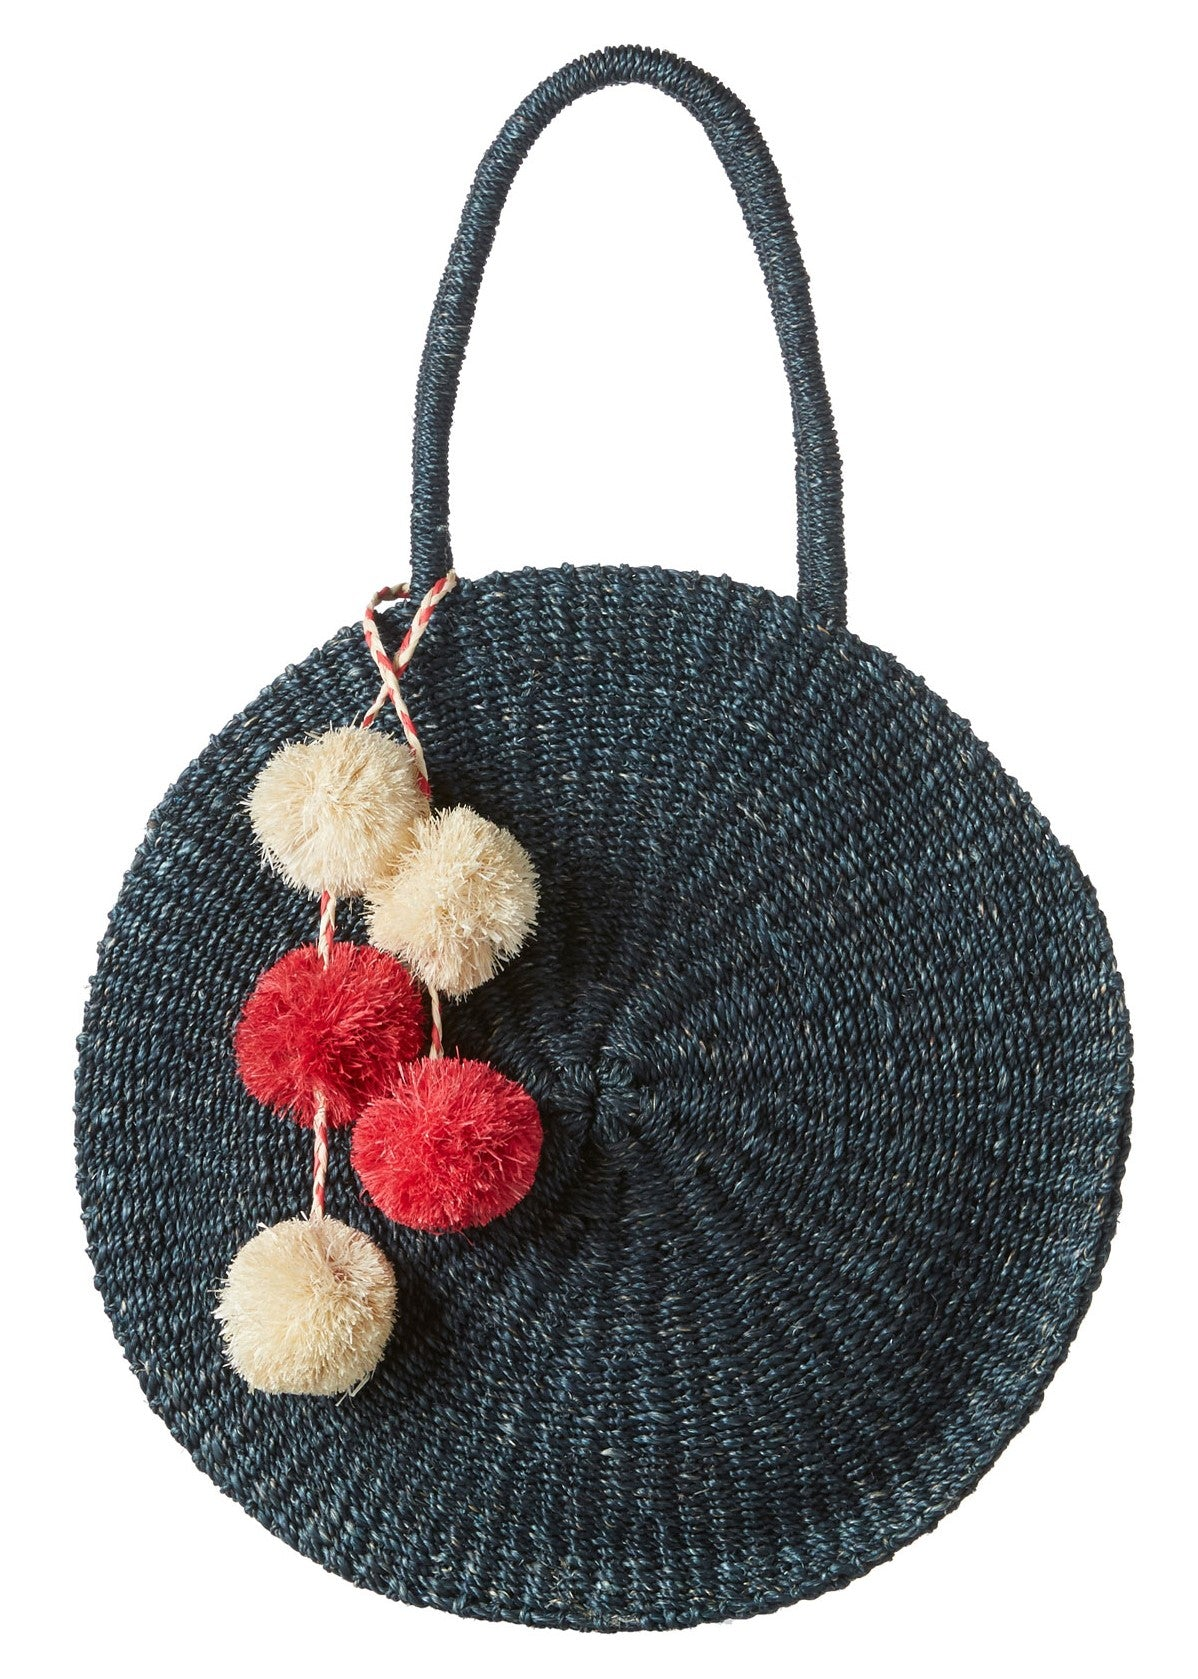 Kayu Sienna round straw bag in navy